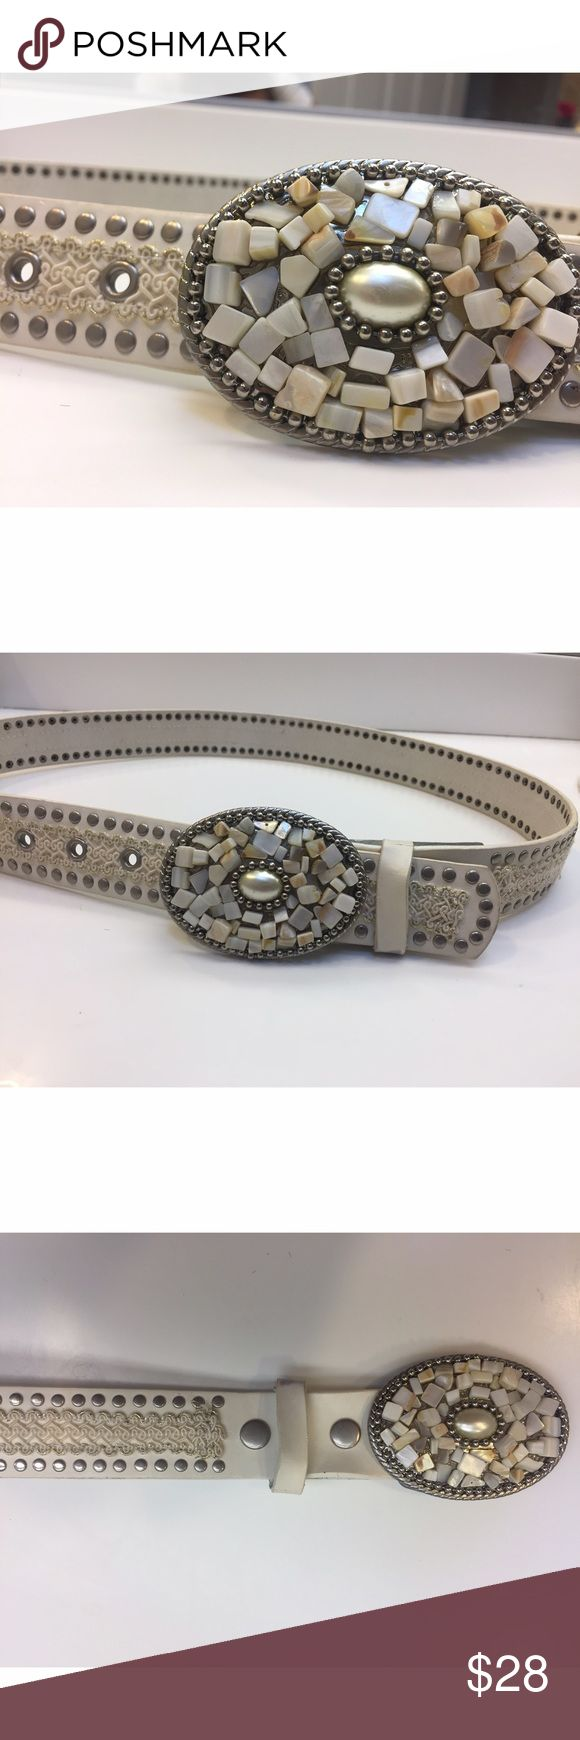 Gorgeous Belt💕 Gorgeous Belt. Measures 41 inches in length without the buckle. Minimal signs of wear and tear visible in last photo. But it gets covered by the buckle when you wear it. Accessories Belts